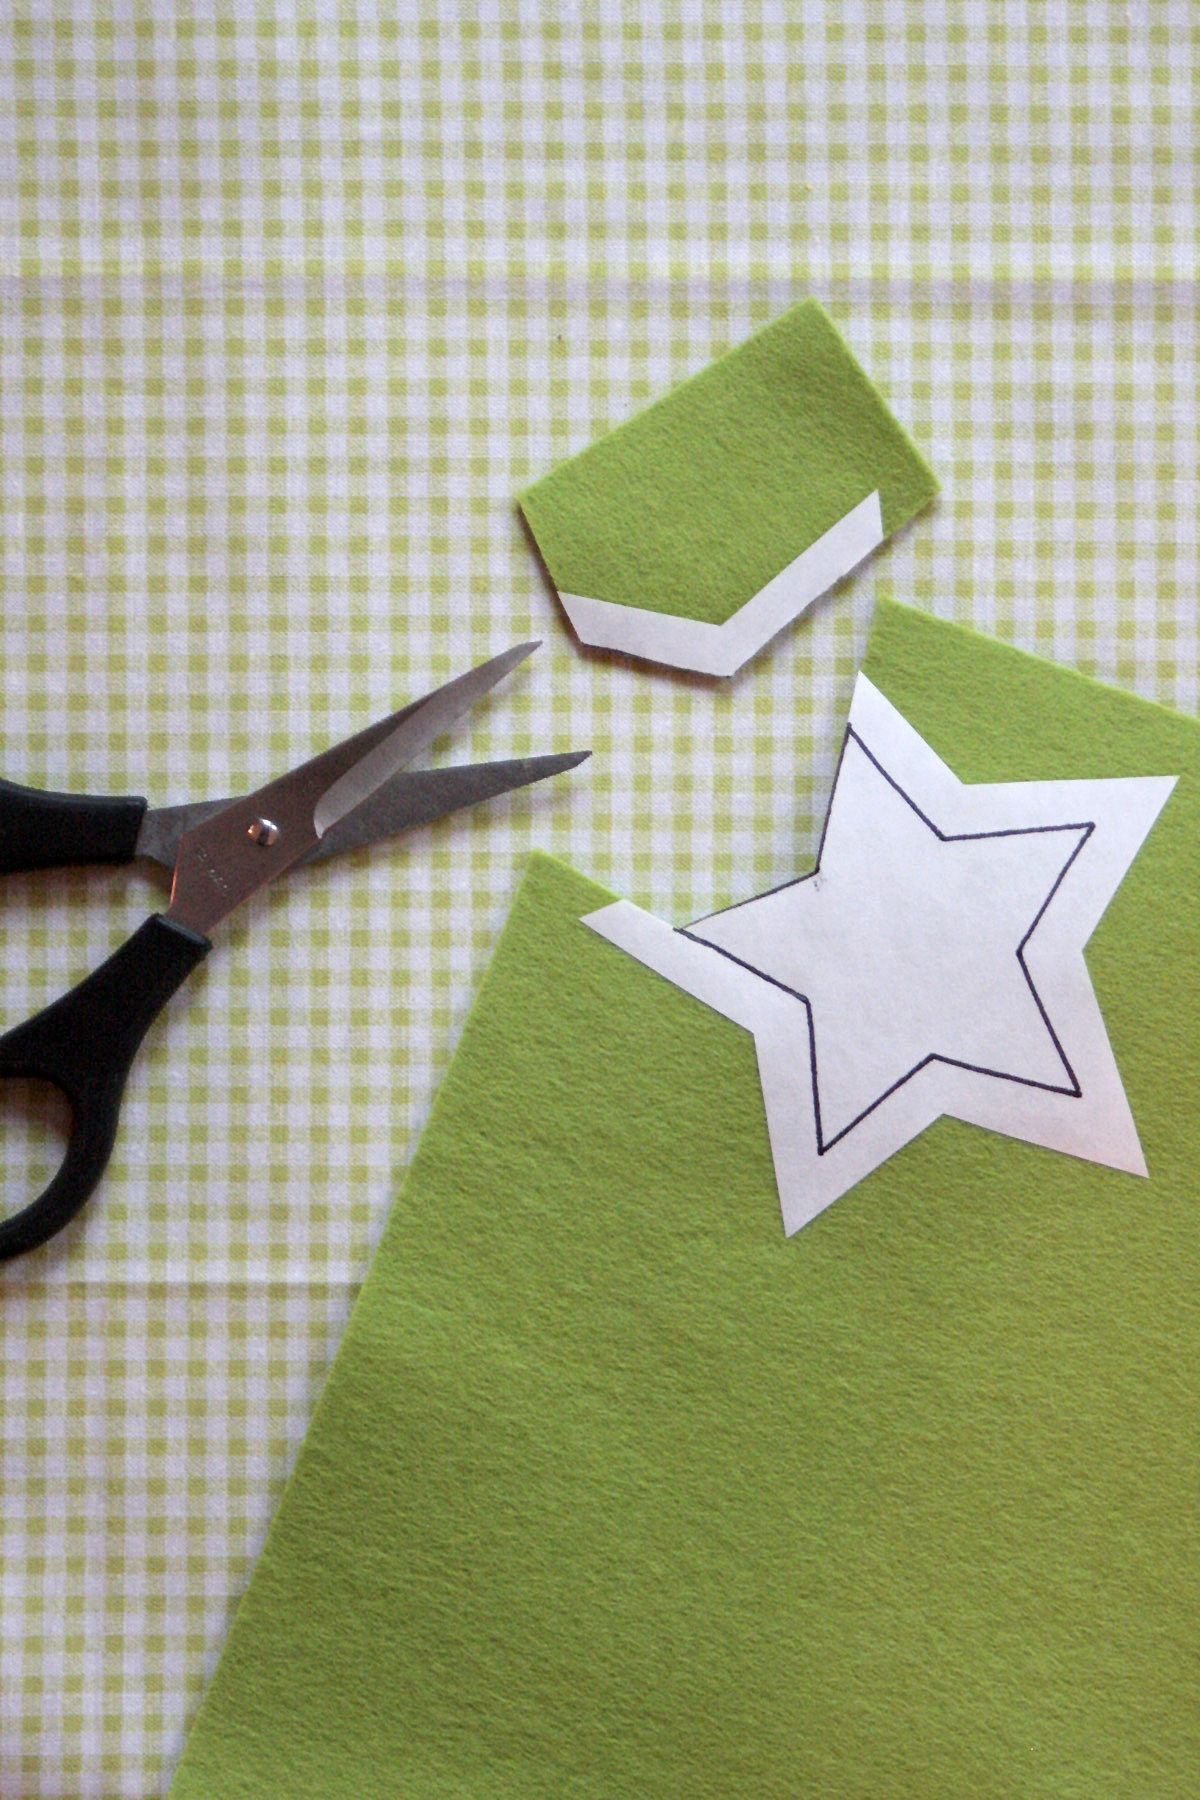 Everyday Handmade: Tips for Working with Felt